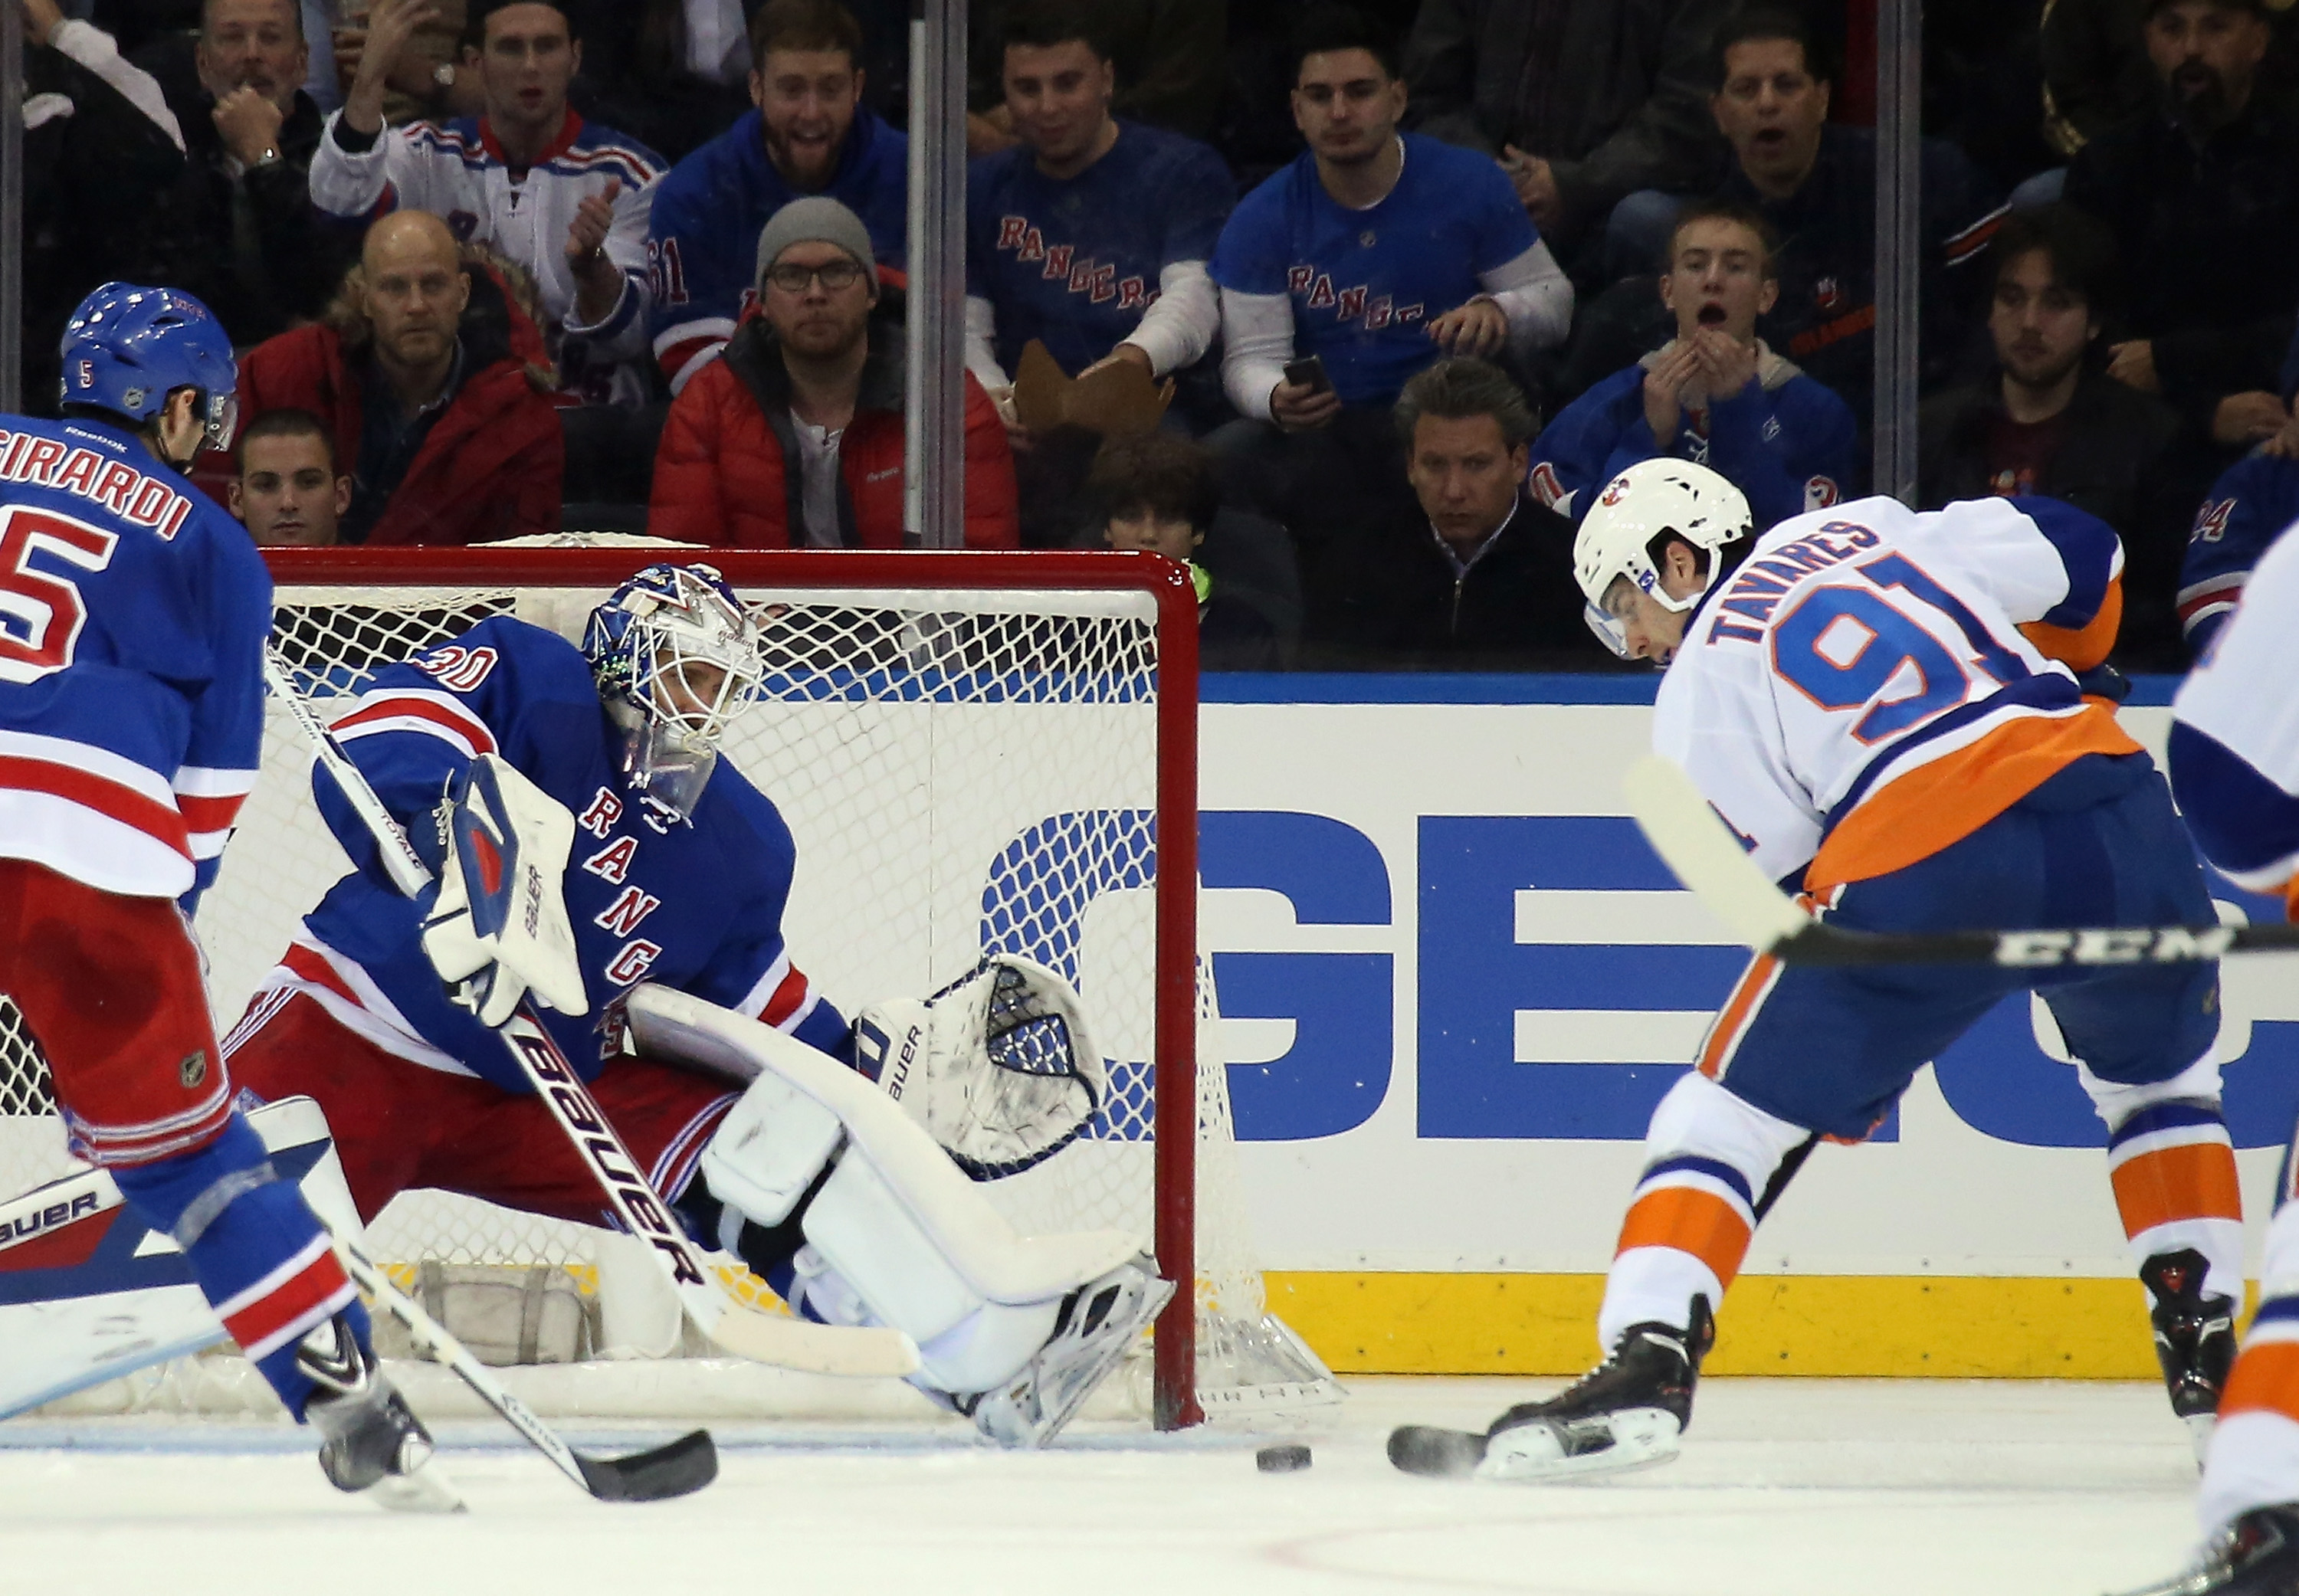 NEW YORK, NY - DECEMBER 20: Henrik Lundqvist #30 of the New York Rangers moves across to stop a shot by John Tavares #91 of the New York Islanders during the second period at Madison Square Garden on December 20, 2013 in New York City.  (Photo by Bruce Bennett/Getty Images)